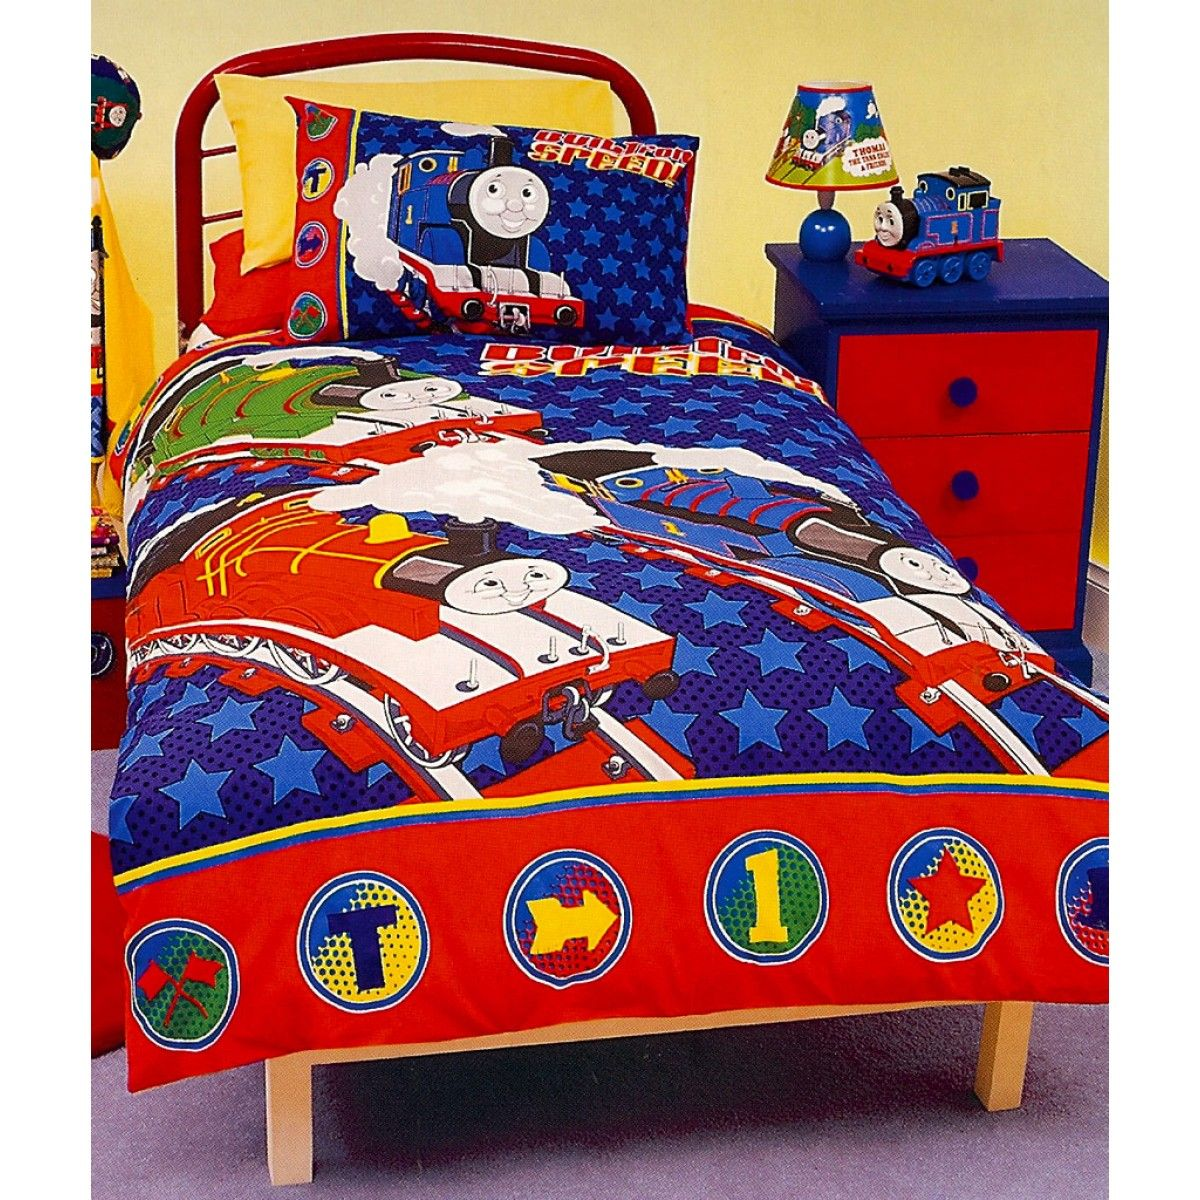 Thomas And Friends Quilt Cover Set Quilt Cover Sets Thomas And